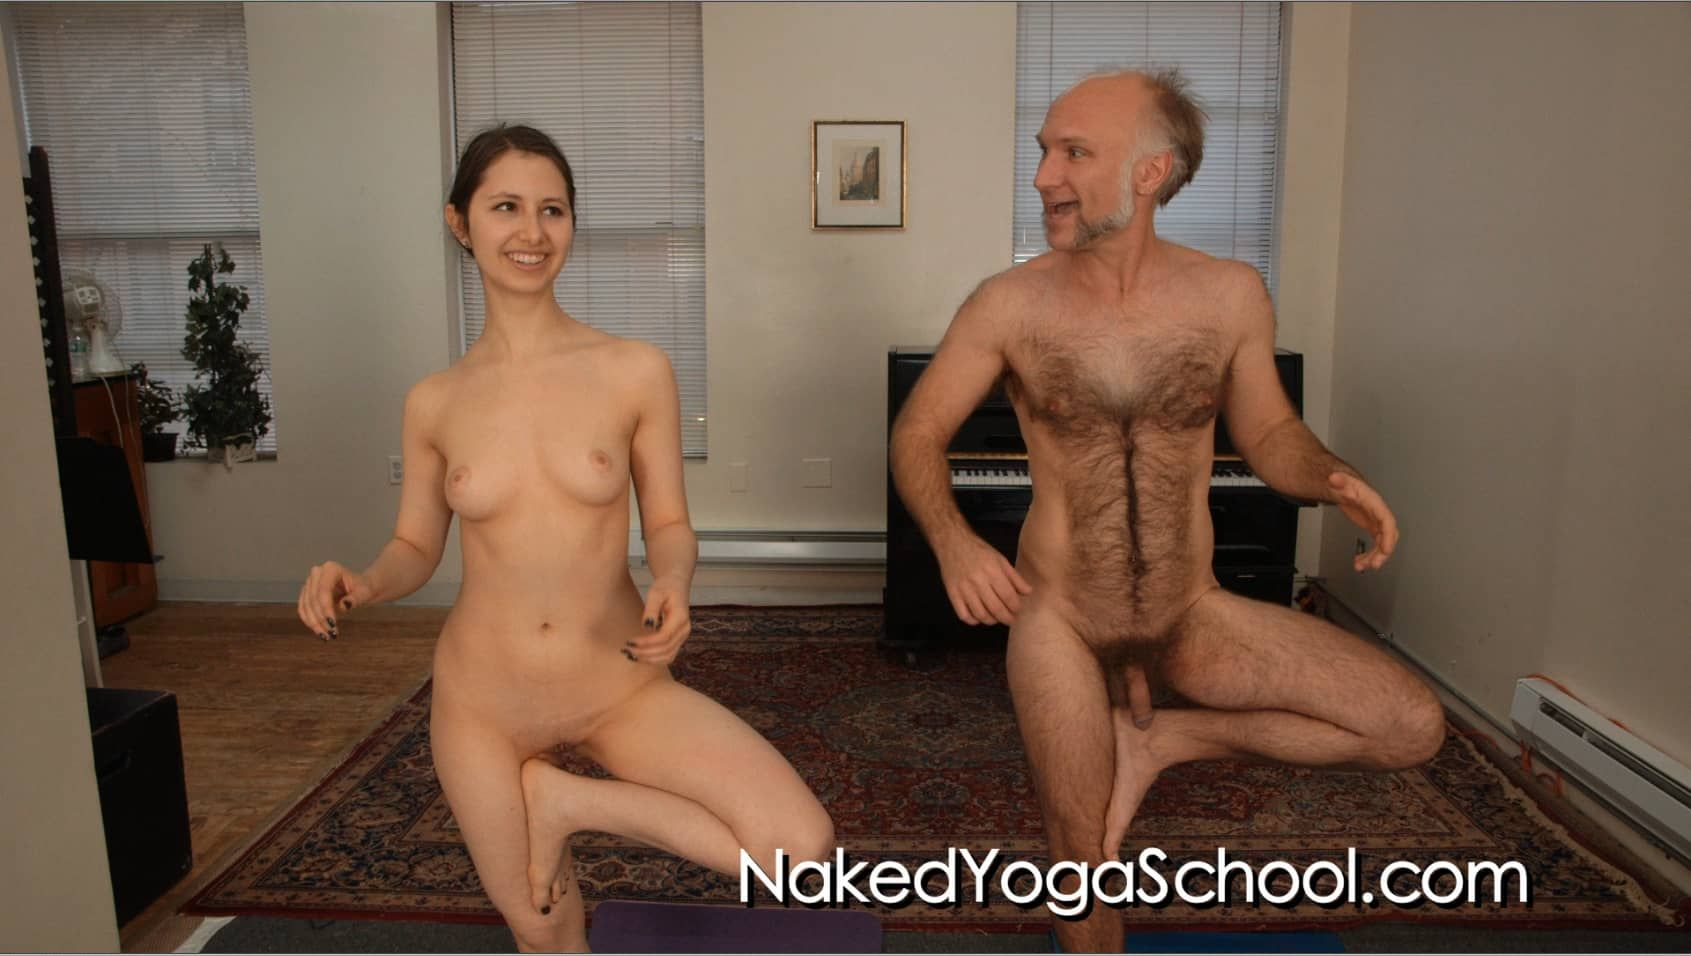 Naked Face Yoga 2 Introduction Naked Yoga School With Michael Collibrina On